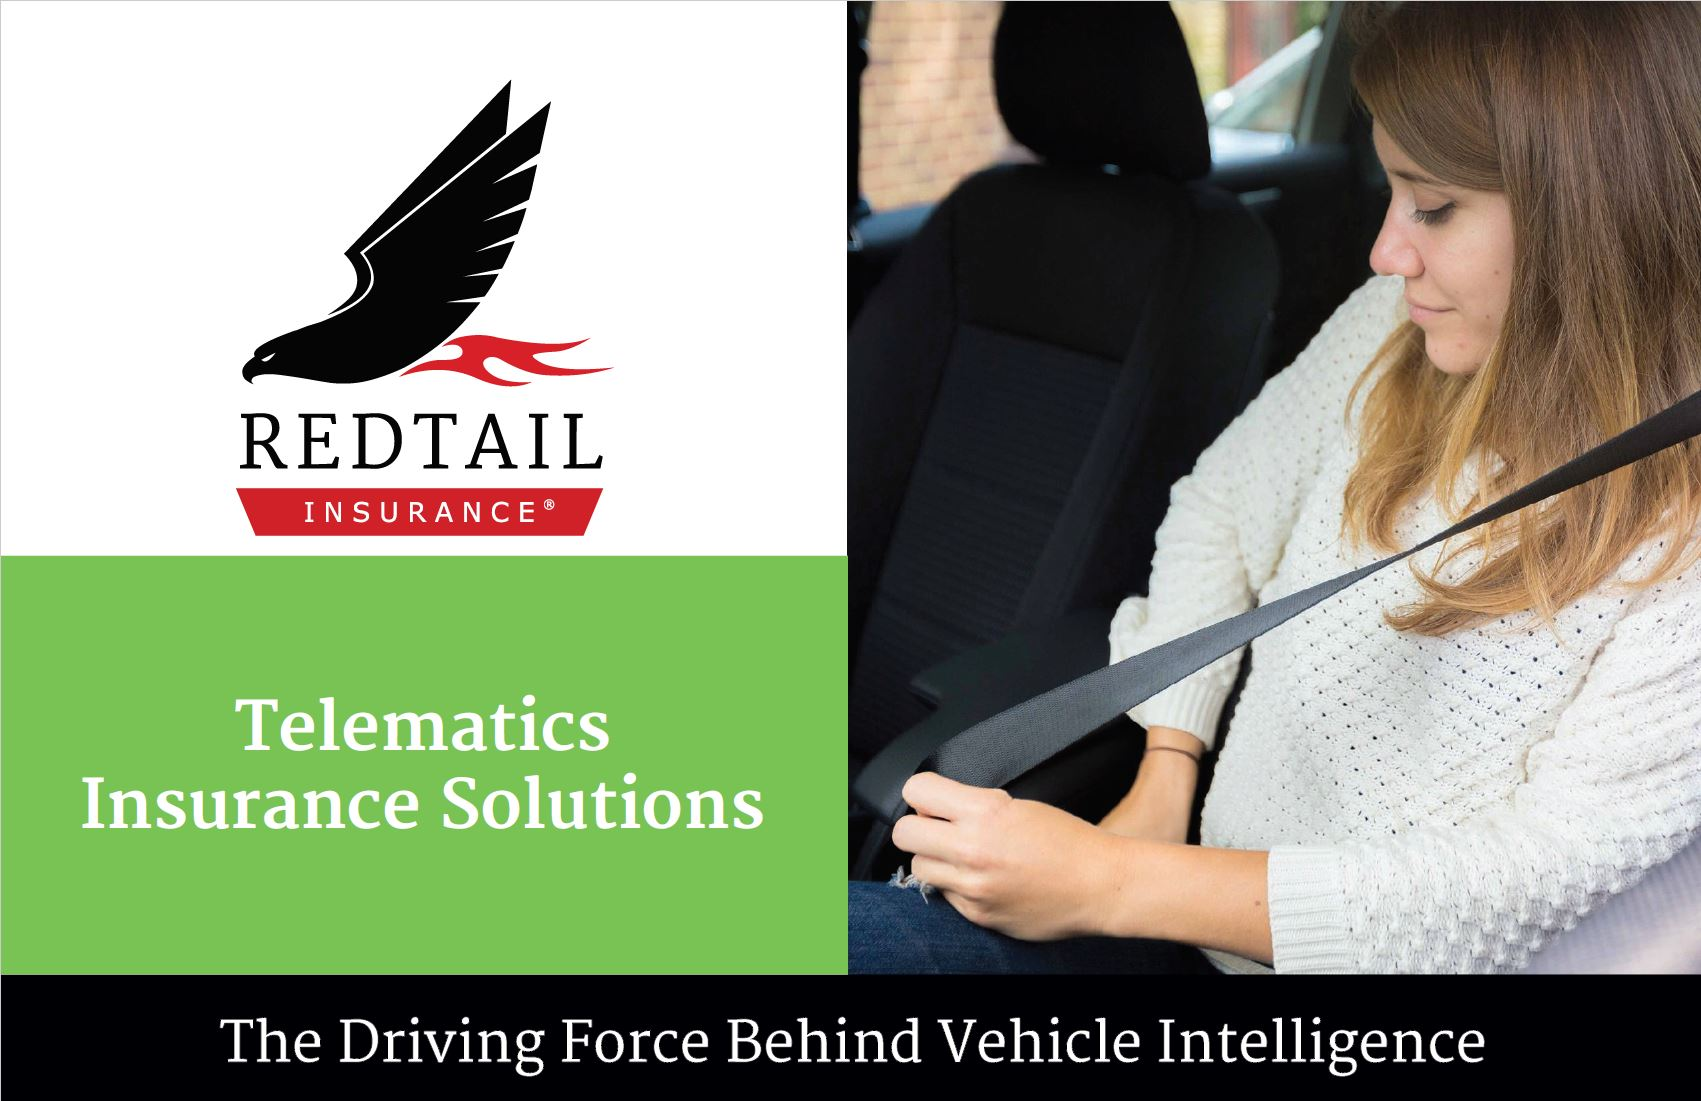 Redtail Insurance